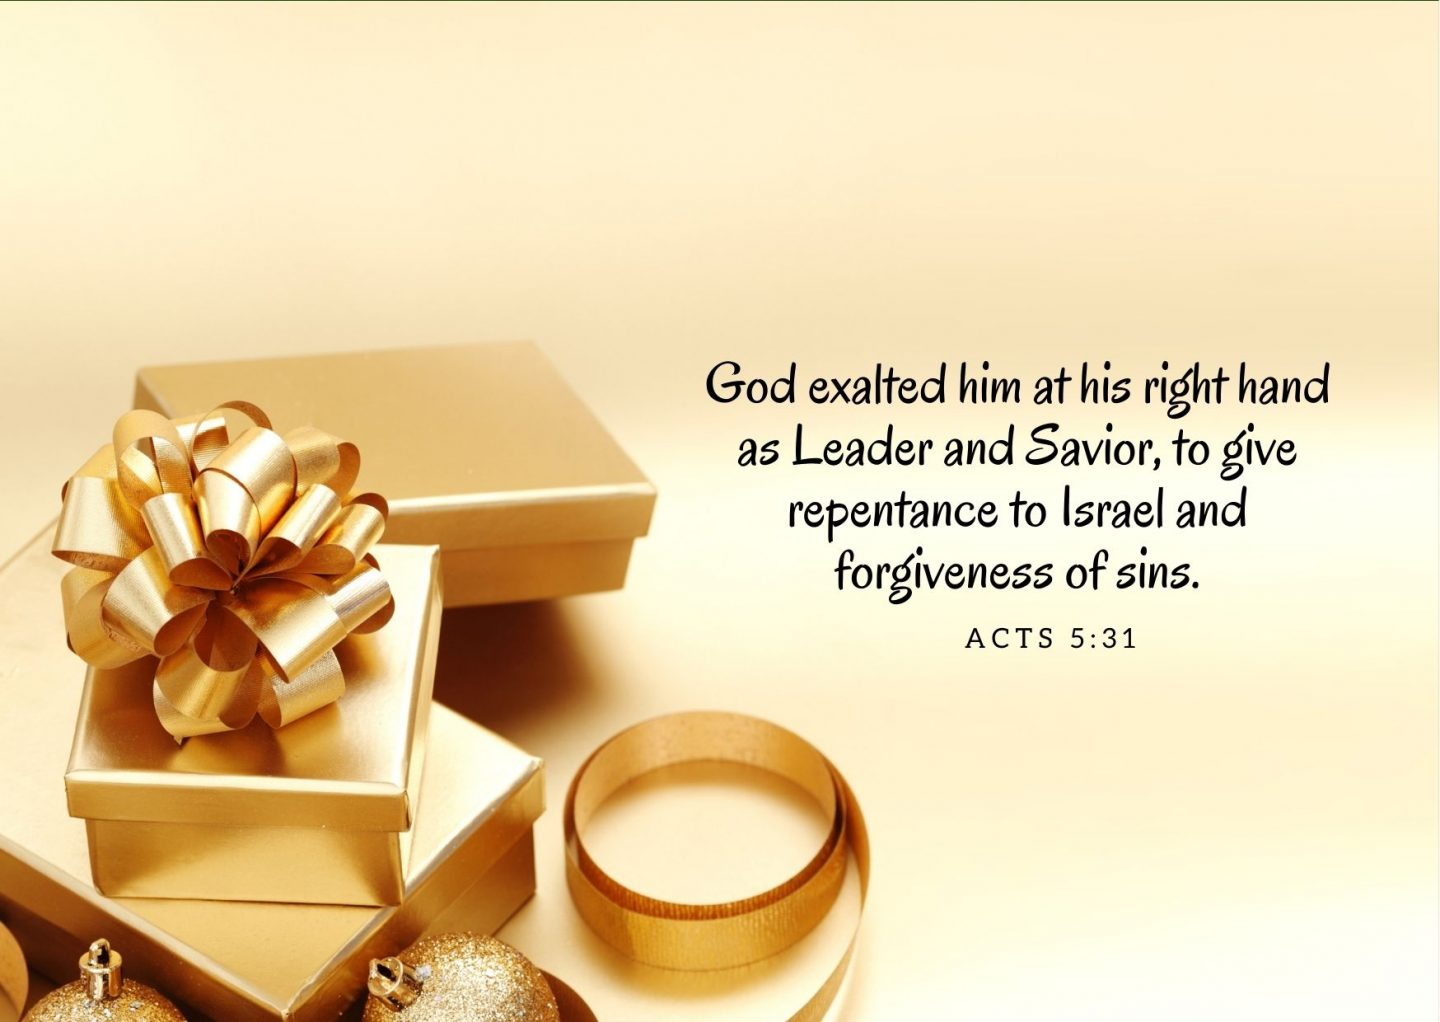 God exalted him at his right hand as Leader and Savior, to give repentance to Israel and forgiveness of sins. Acts 5:31